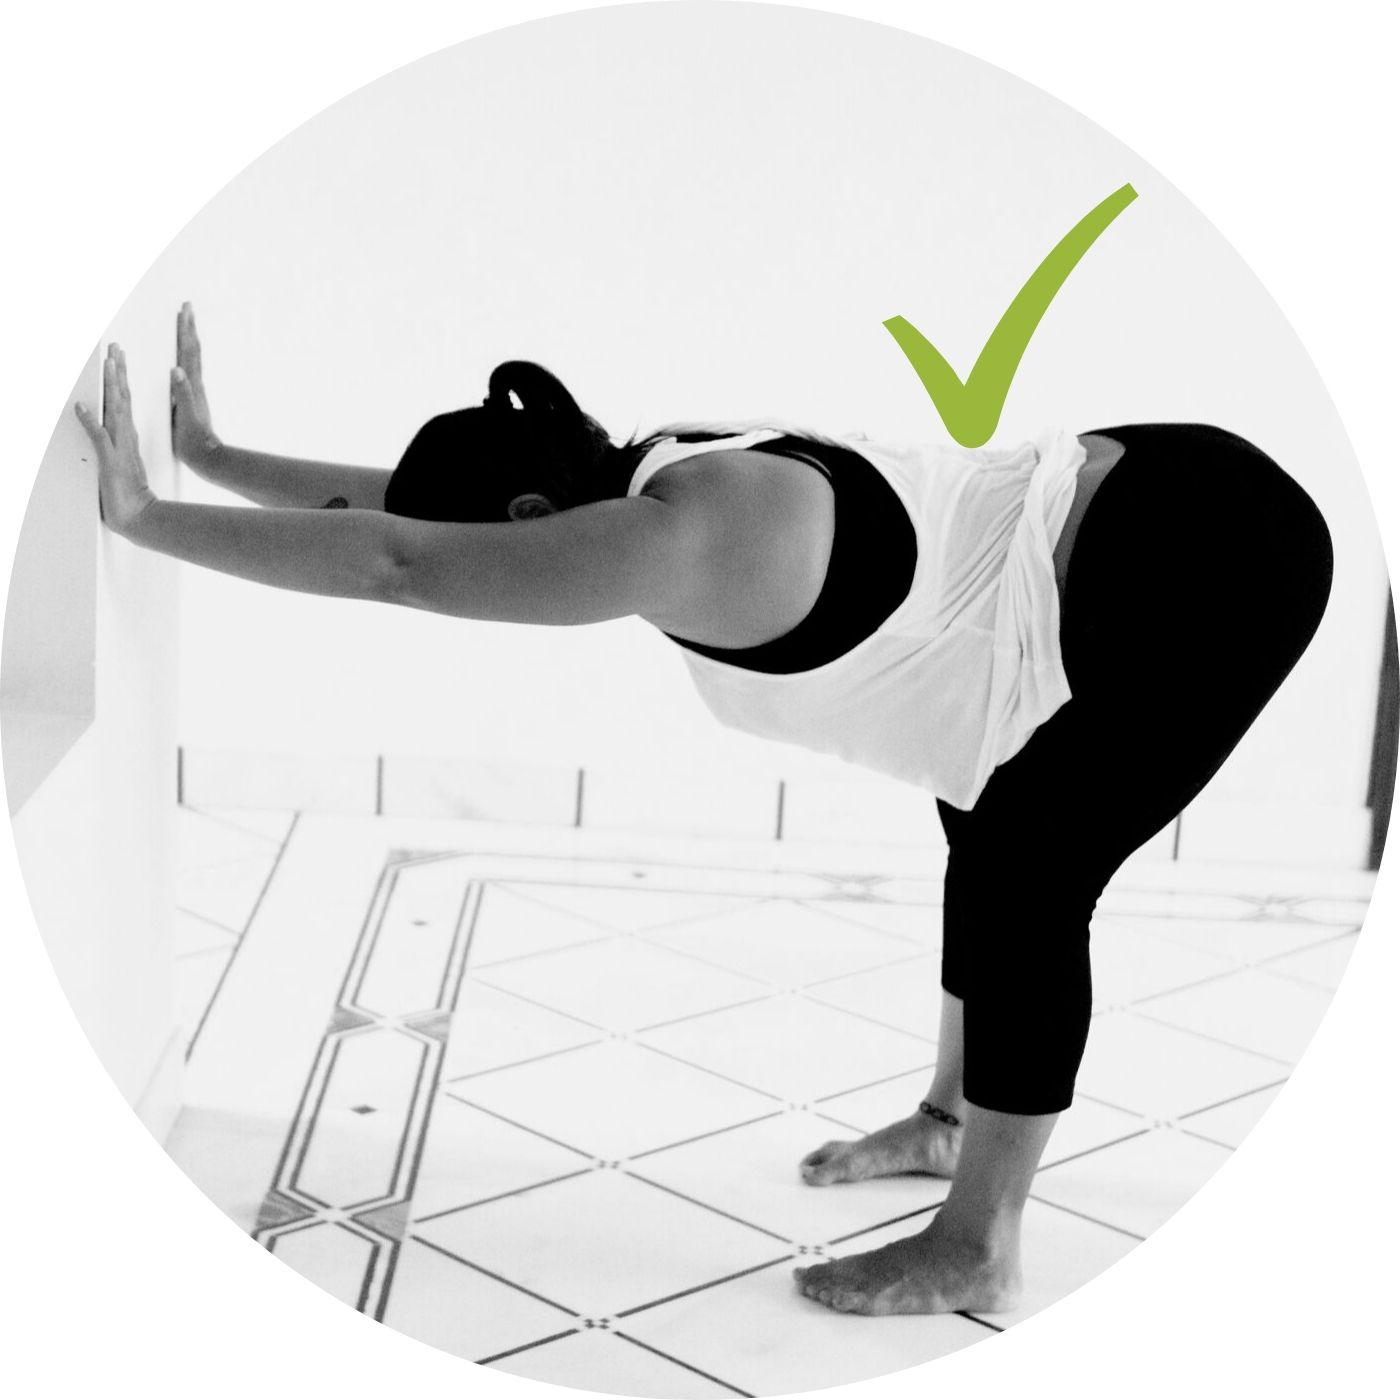 Progression of Wall Down Dog | - Checkpoints:push wall upper back is able to go flat. If rounded, do previous posefeet under hips, soft knees- as thighs come closer to belly, pull butt further behind you. It's normal for the low back to twinge. It's ok- breathe at your threshold for 1 min.